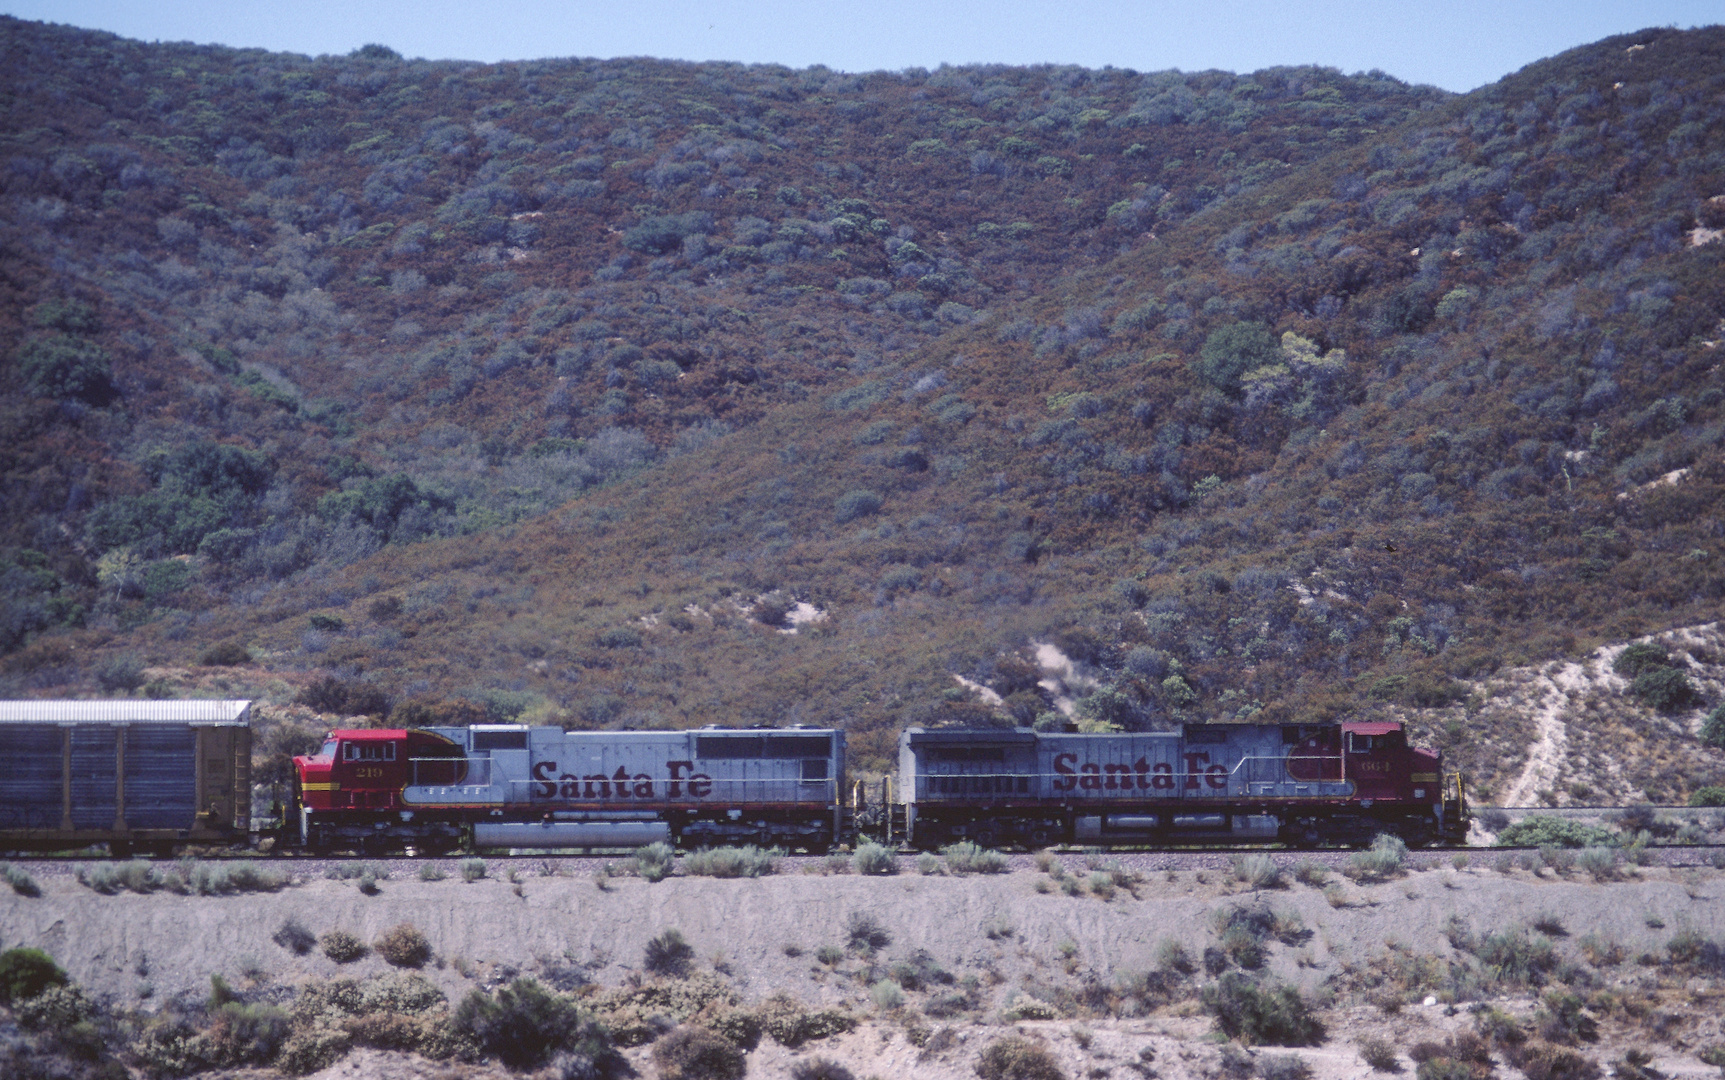 From the old Route 66 View on a passing Enclosed Carrier Cars Train on its way to Cajon Pass, CA